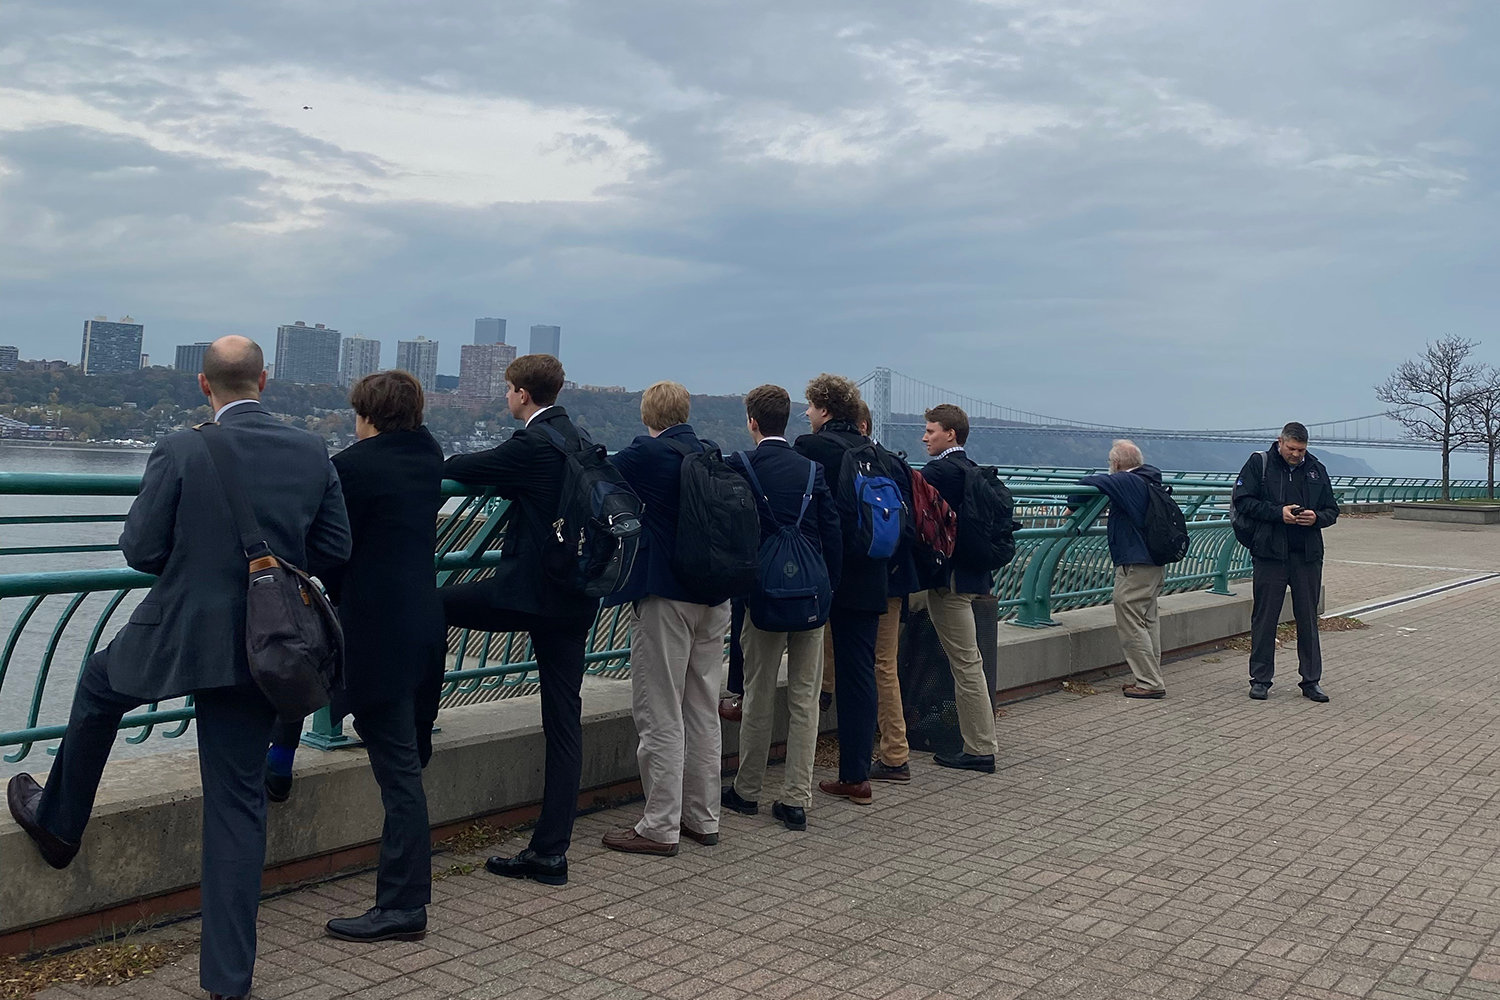 The group of students and faculty overlook the city at the beginning of their trip.